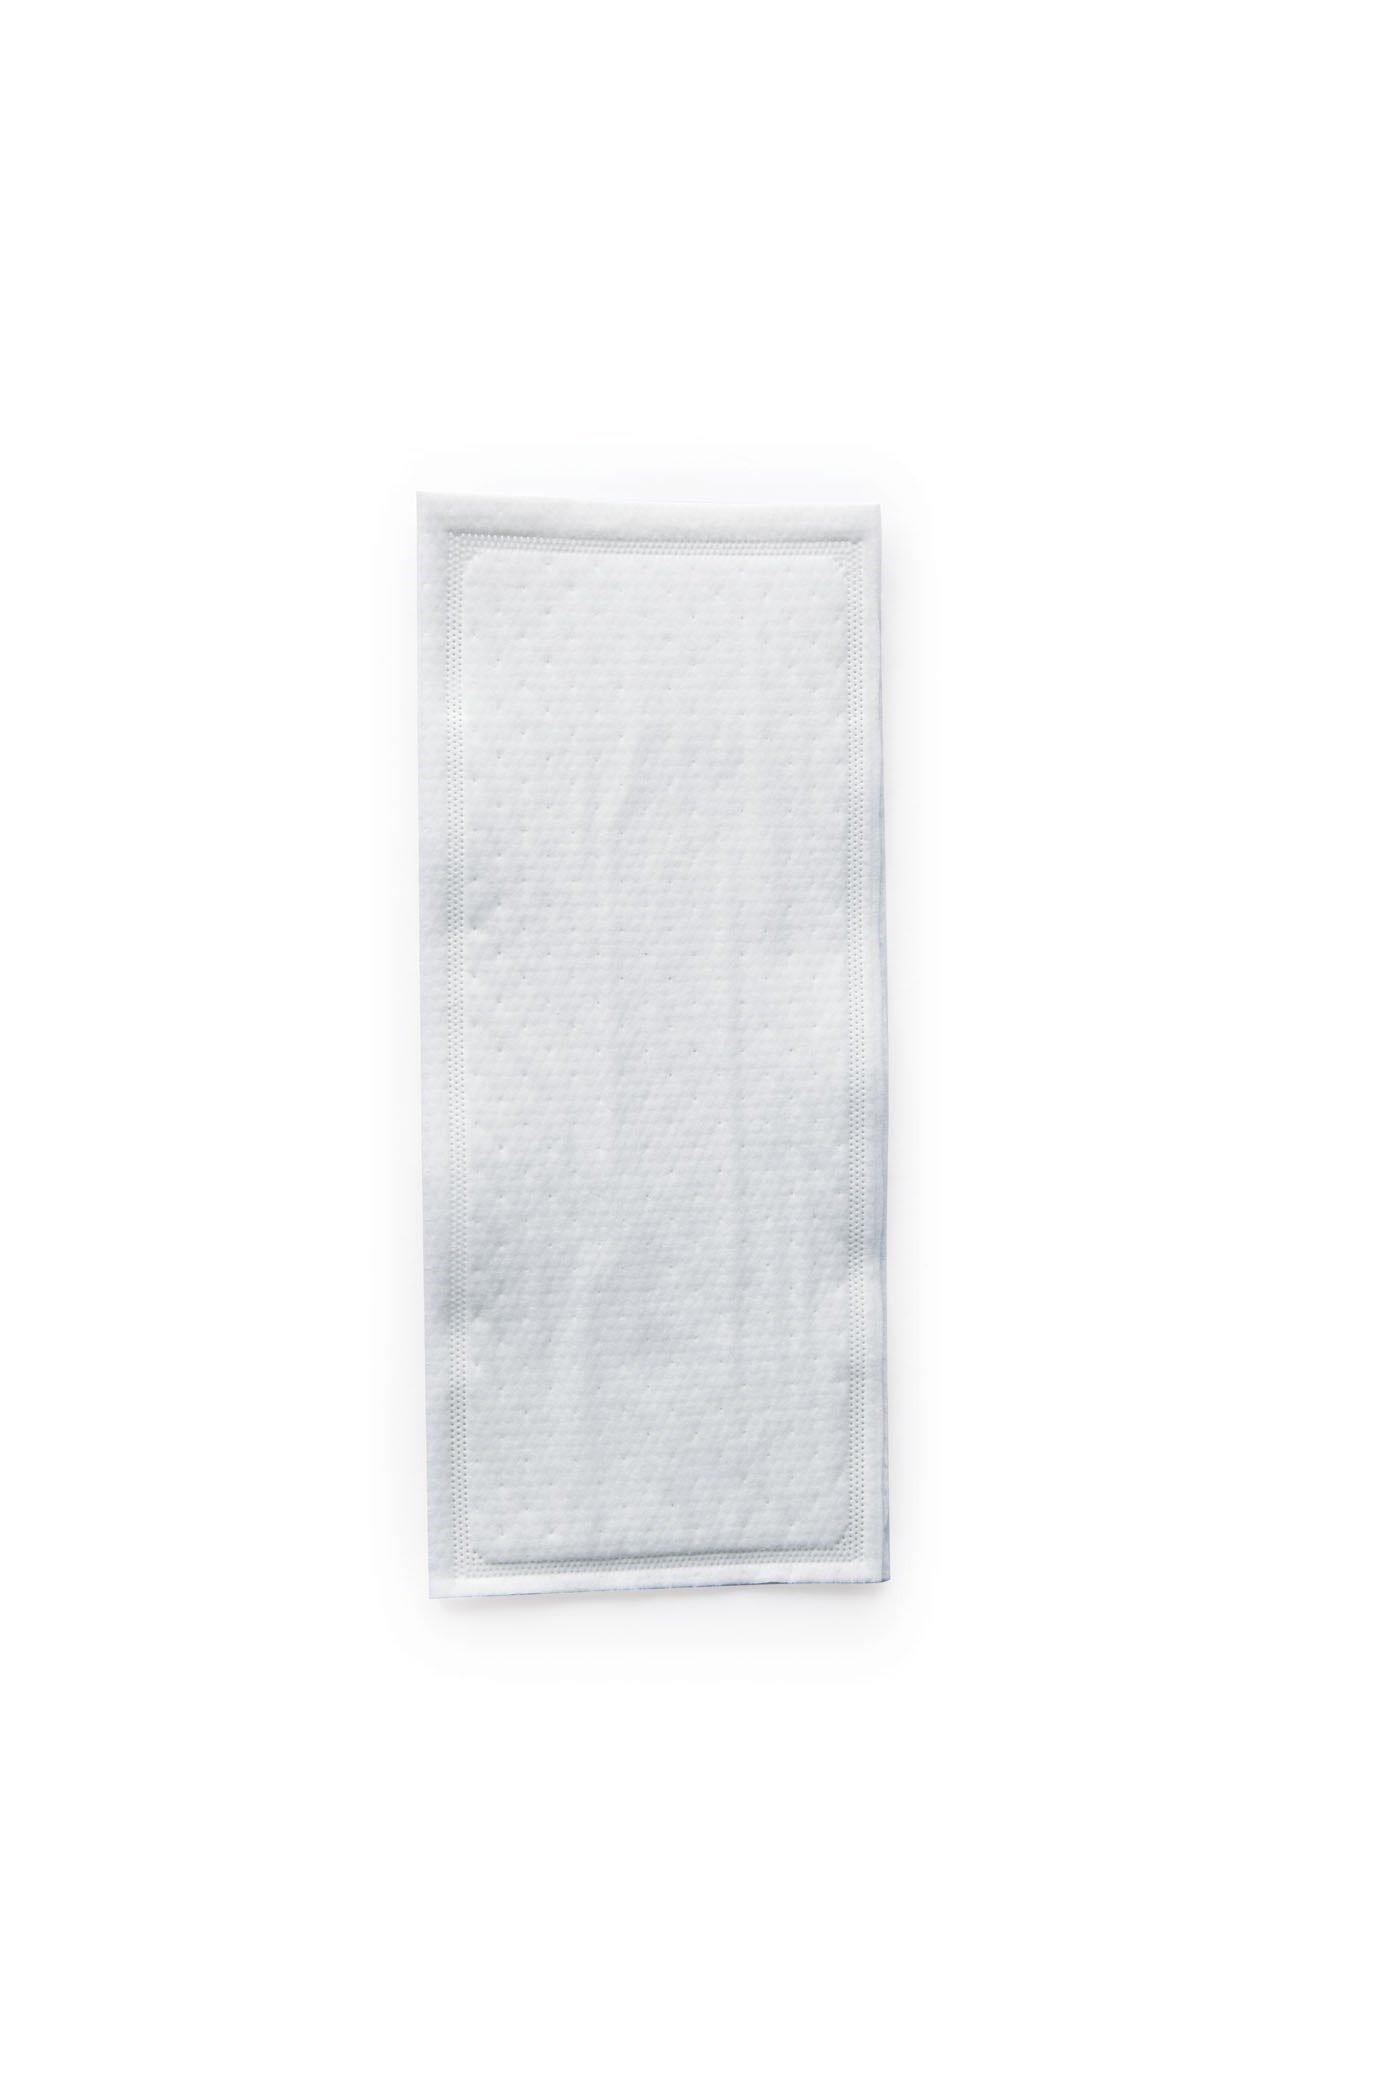 Disposable SWIPES Pads for Spray+Mop (12 count)2